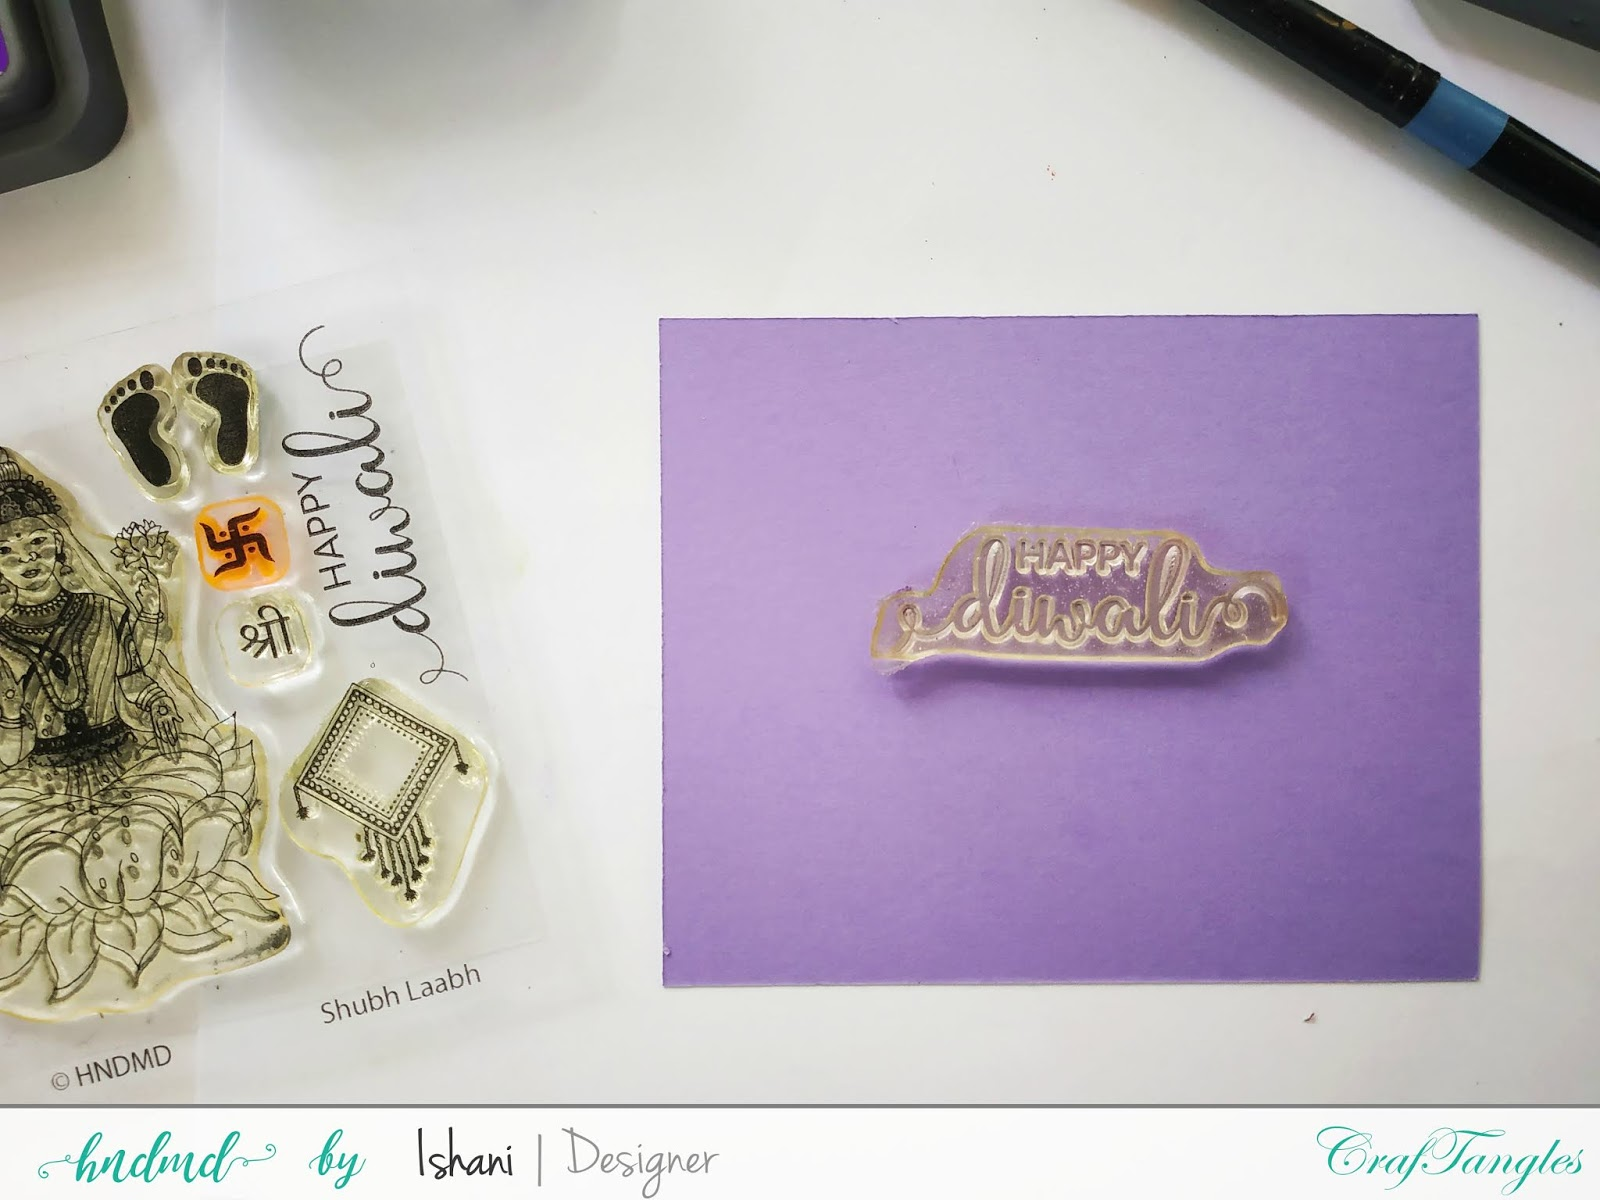 Cardmaking with stencils by Ishani 8